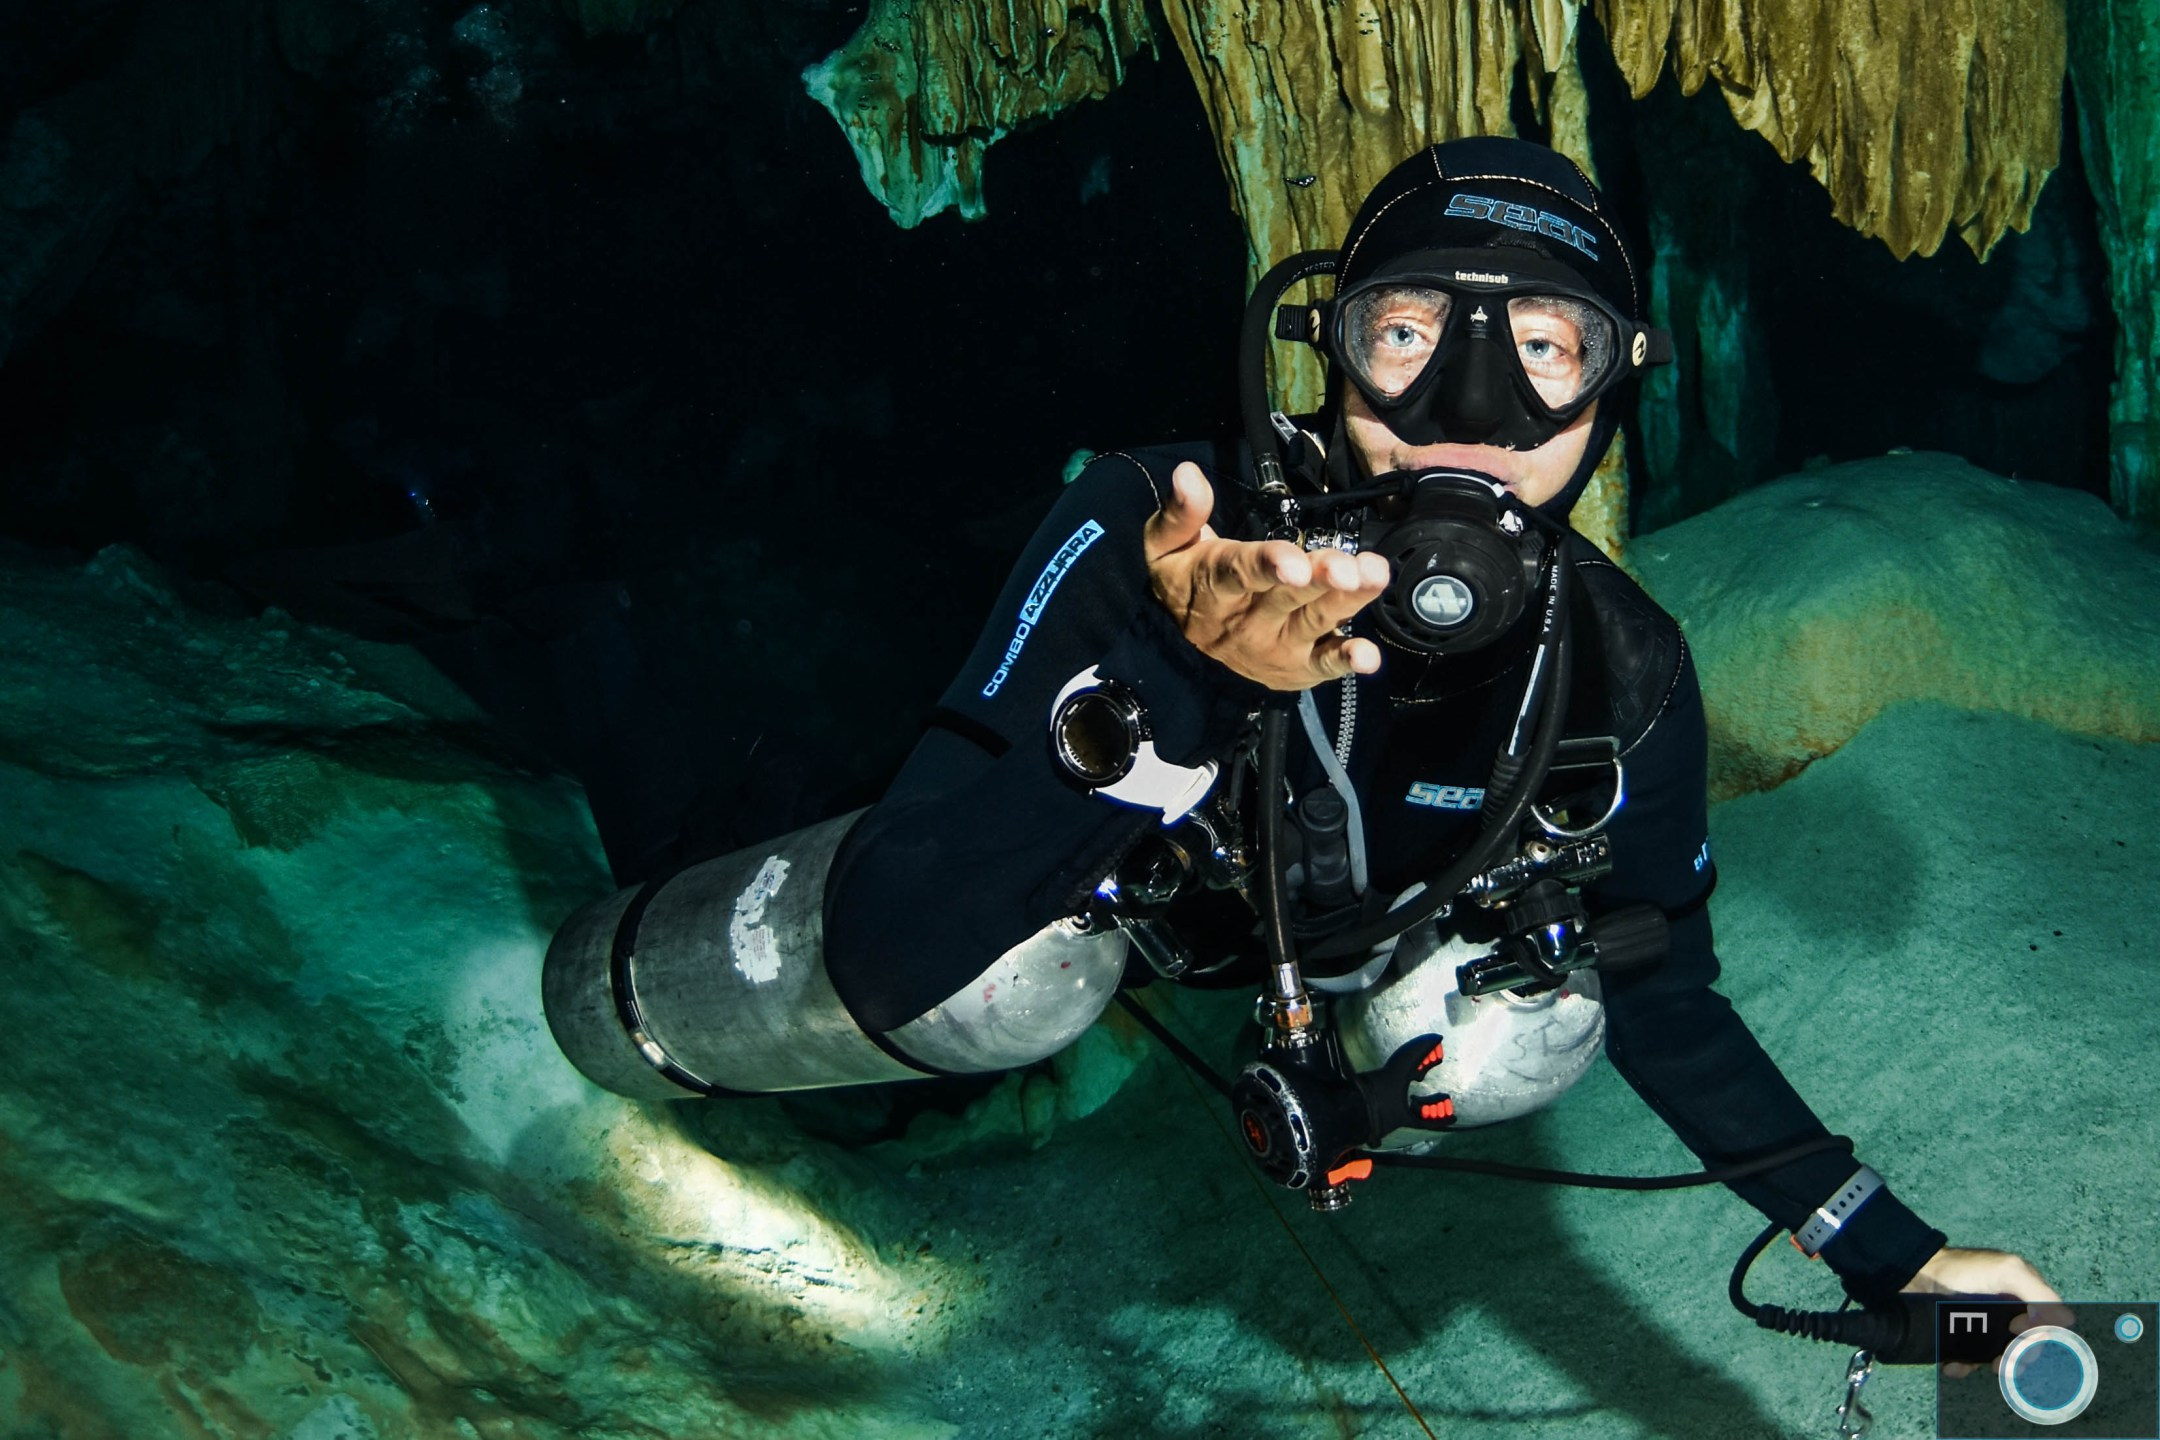 Cenote Guide at Cenote Dos Ojos. The Stalagtites & stalagmites are awesome. Come and see for yourself with Best Cenote Dives.